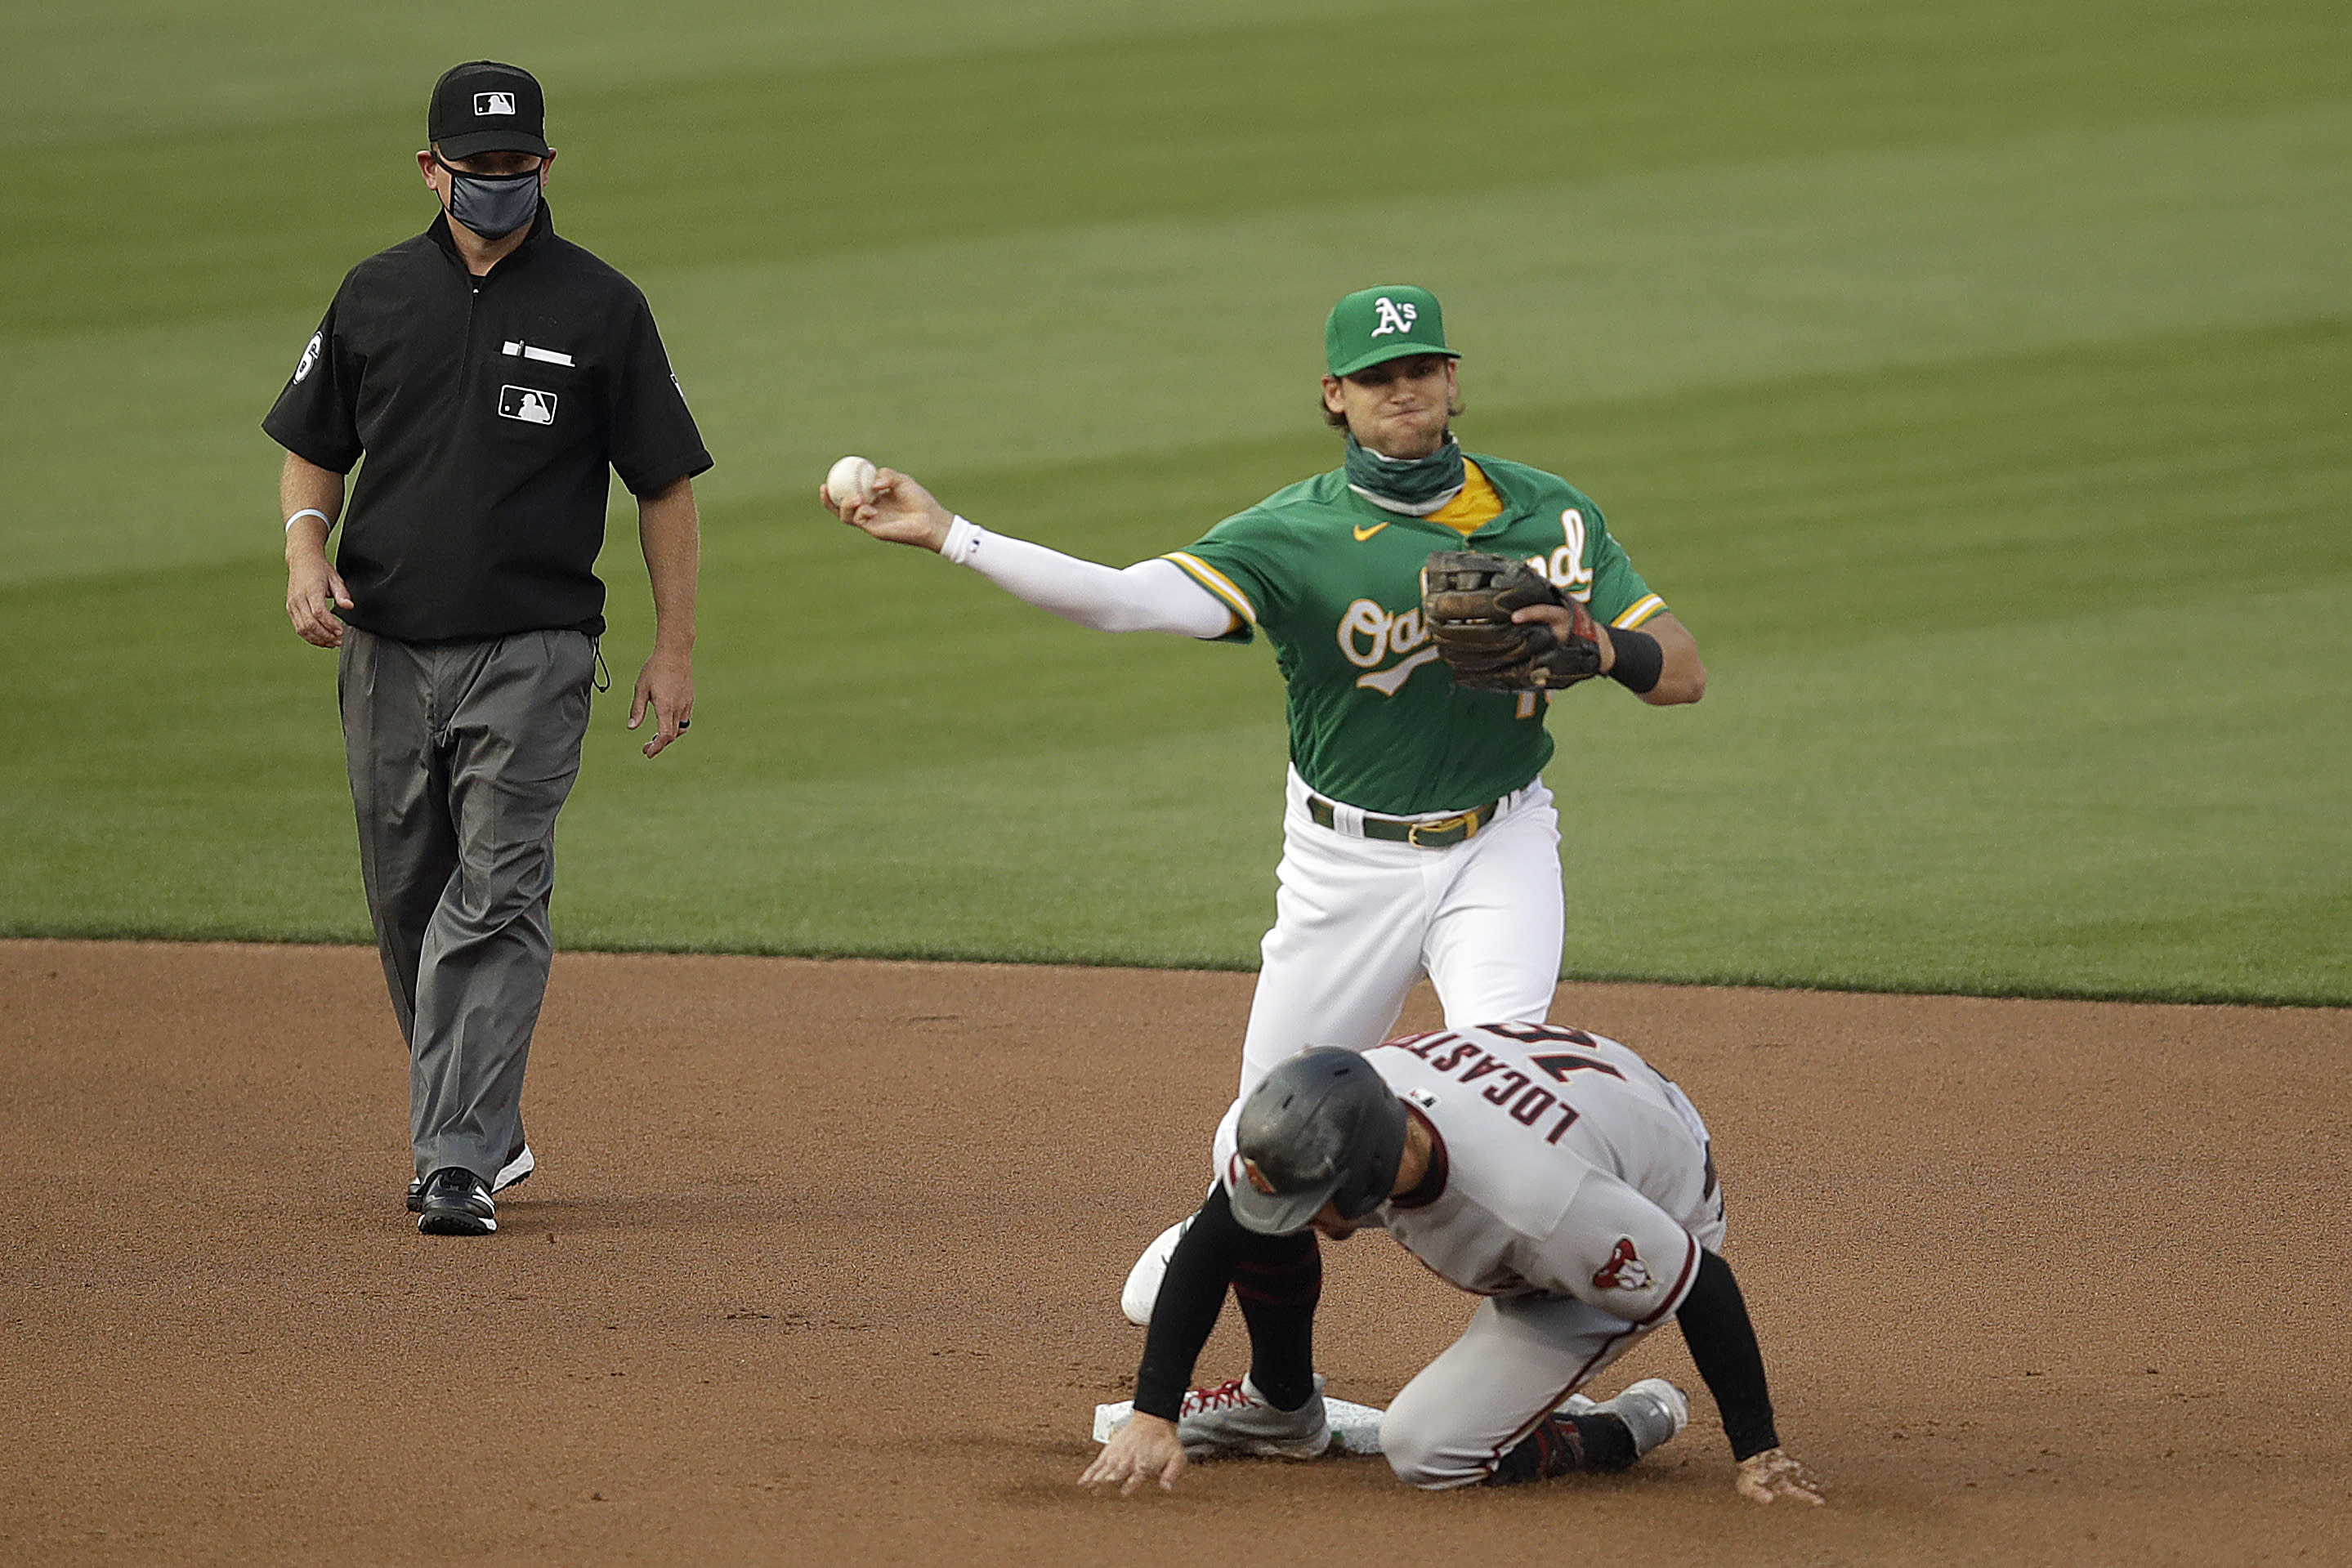 Oakland Athletics' Chad Pinder throws over Arizona Diamondbacks' Tim Locastro to complete a double play in the first inning of a baseball game Thursday, Aug. 20, 2020, in Oakland, Calif. Arizona's Ketel Marte was out at first base. (AP Photo/Ben Margot)